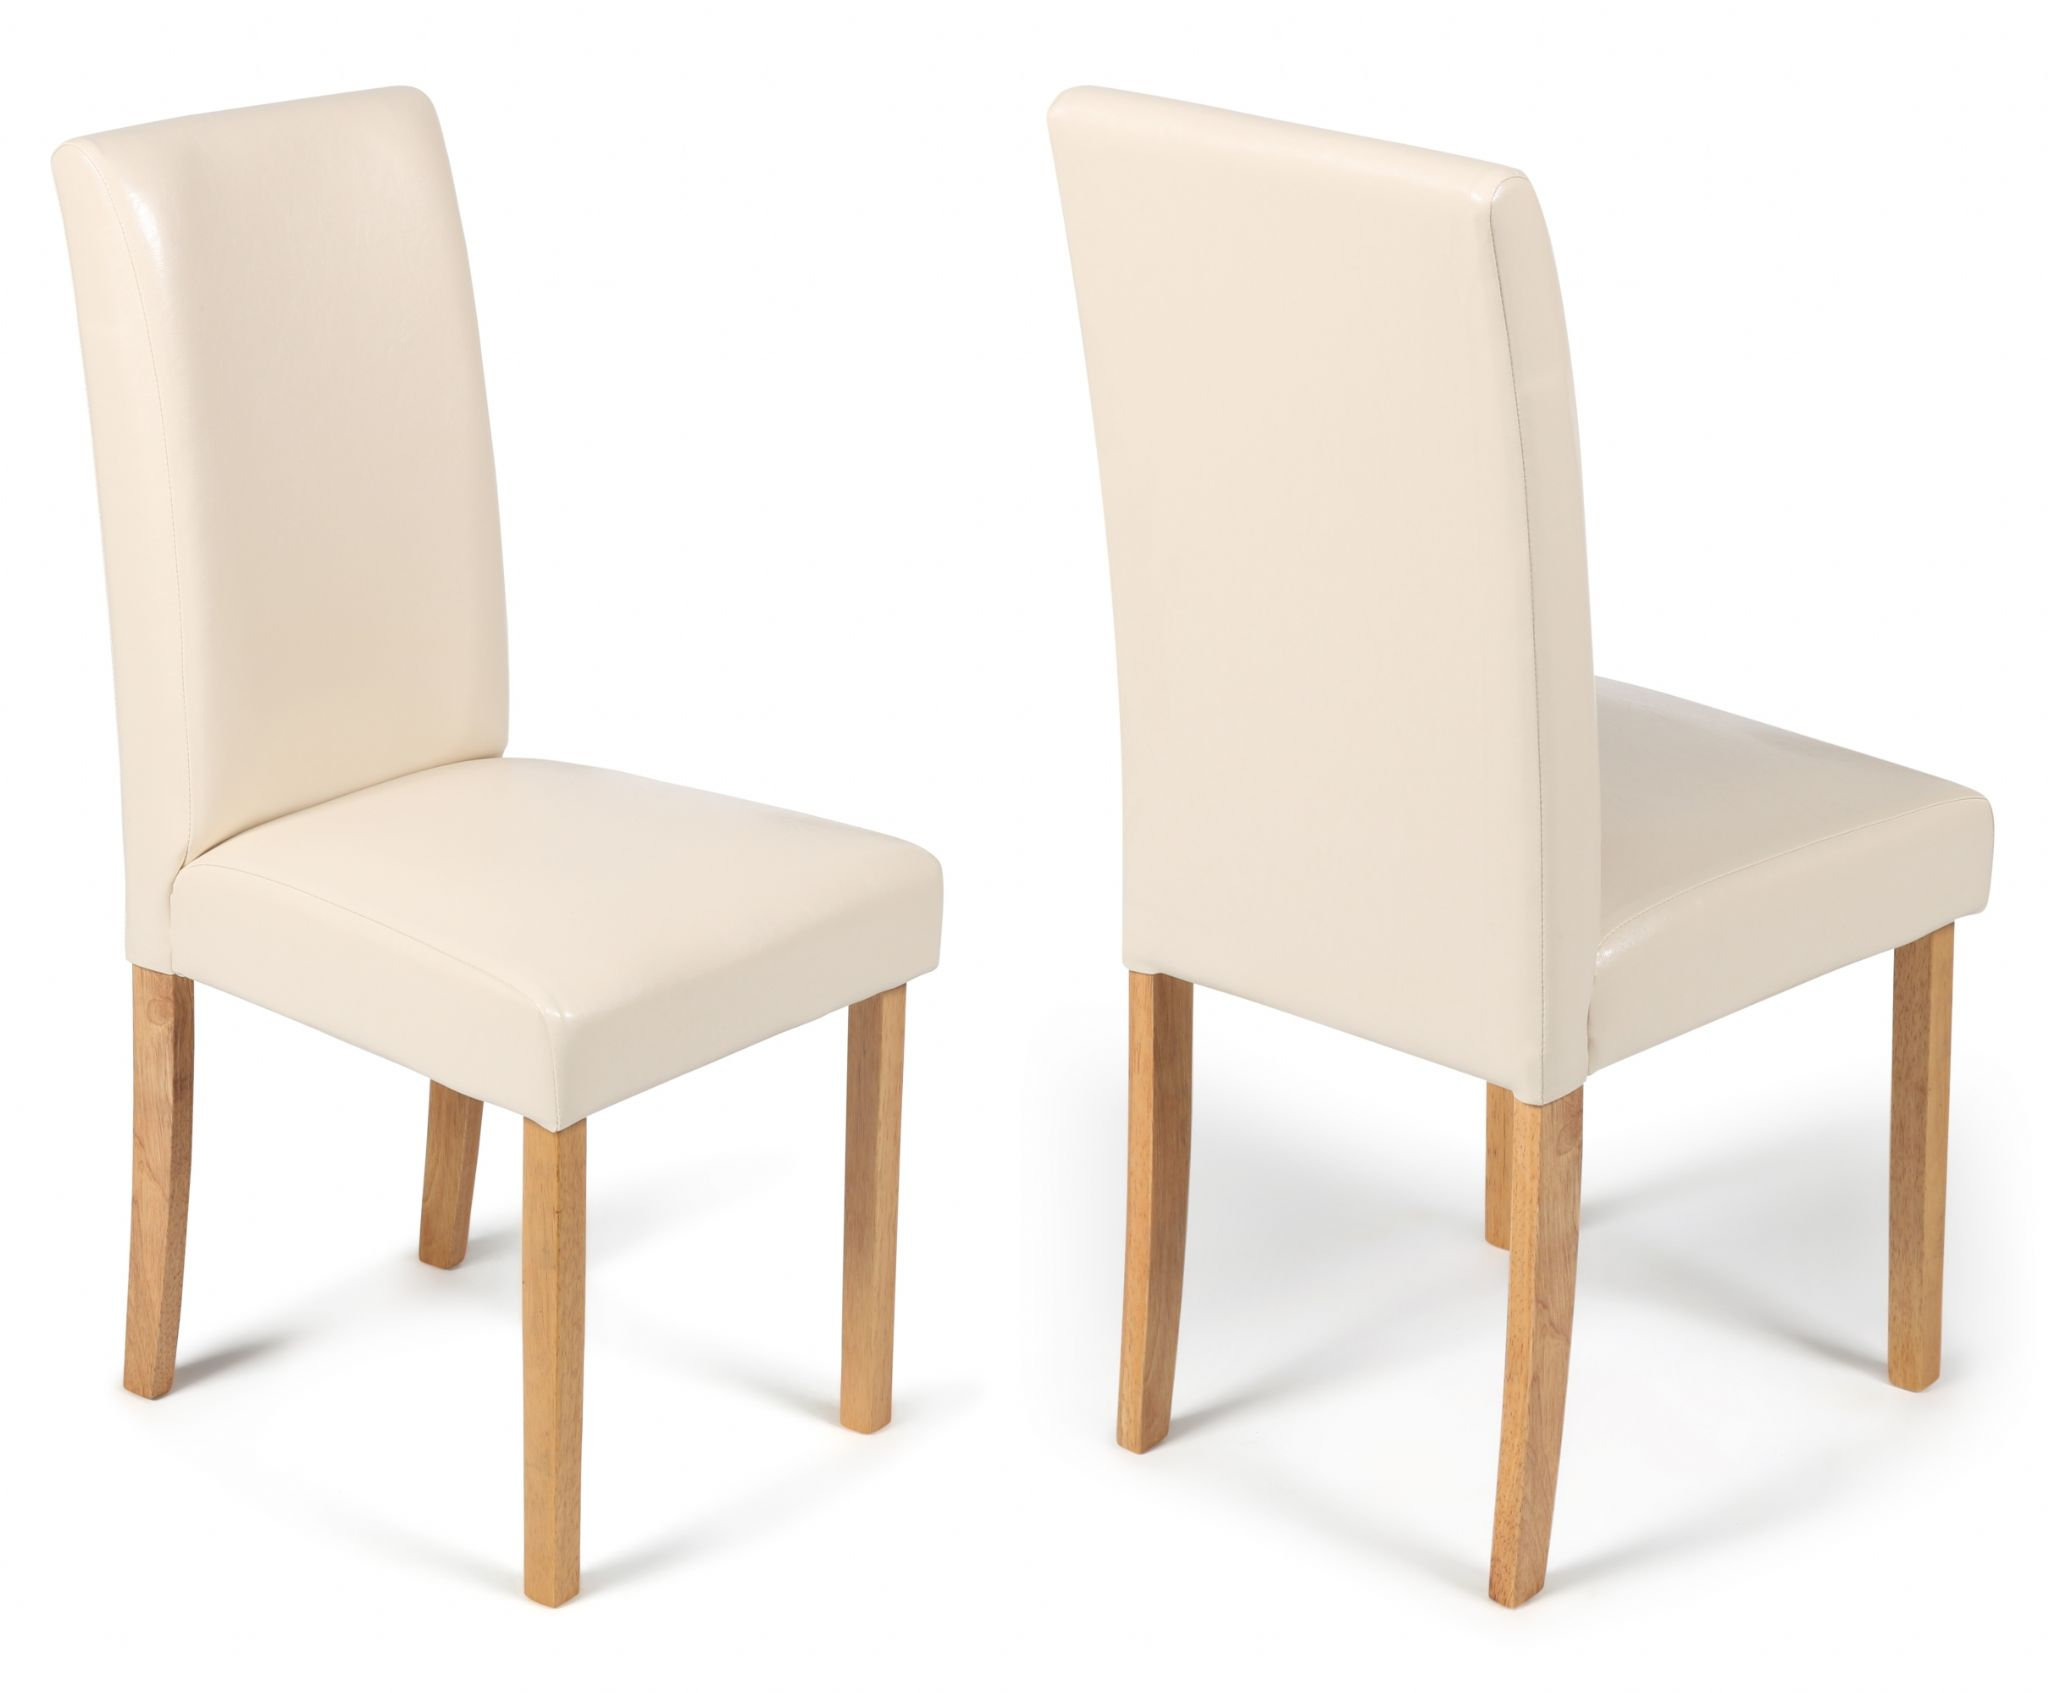 Cream Leather Dining Chairs Torino Cream Faux Leather Dining Chairs 1 2 Price Sale Now